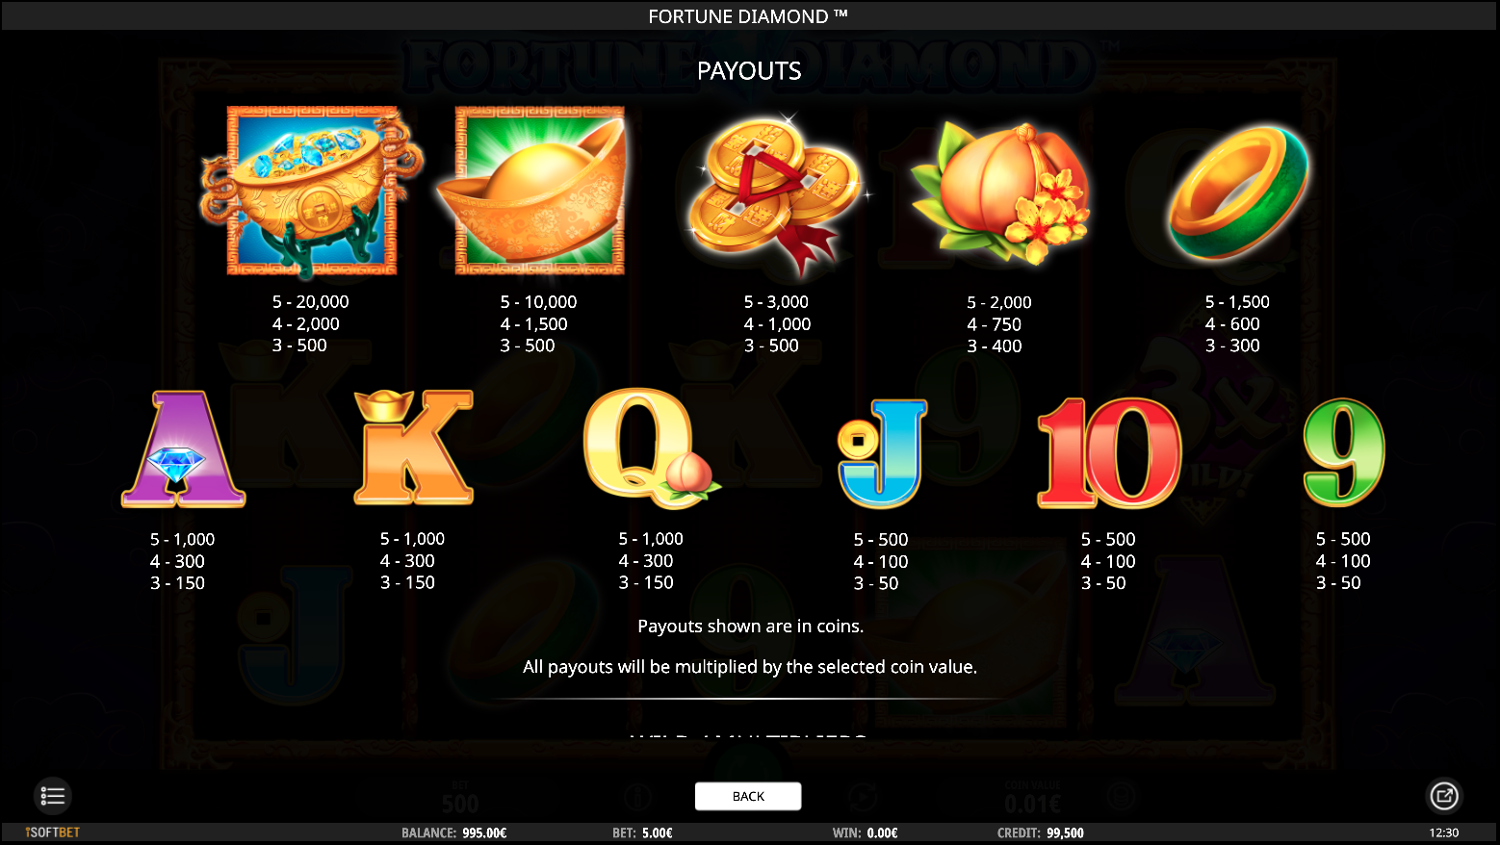 Fortune Diamond paytable